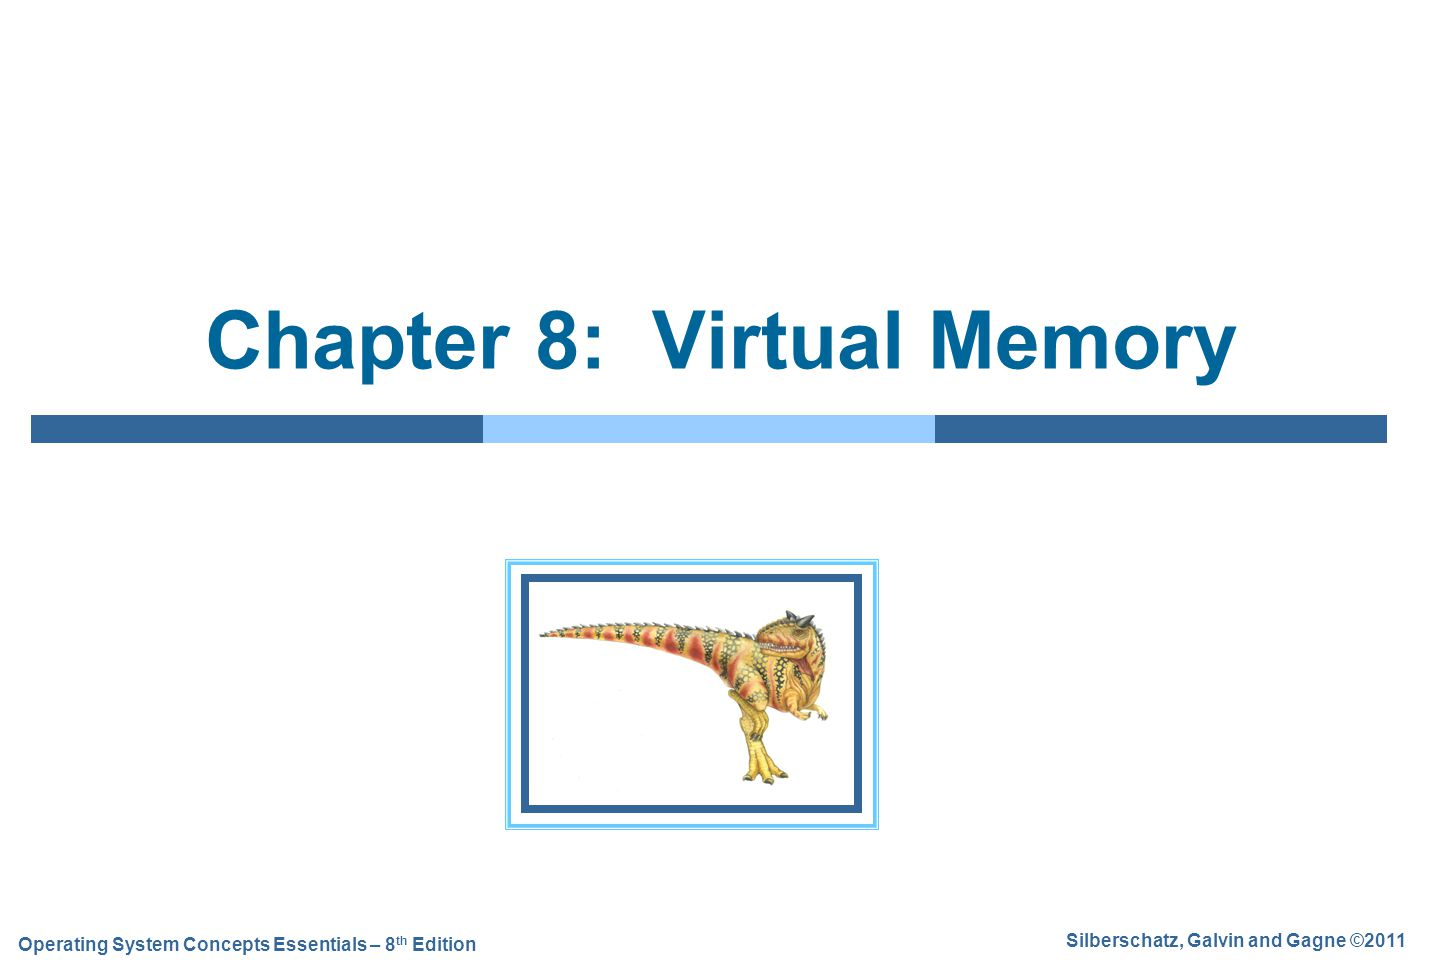 8.2 Silberschatz, Galvin and Gagne ©2011 Operating System Concepts Essentials – 8 th Edition Chapter 8: Virtual Memory Background Demand Paging Copy-on-Write Page Replacement Allocation of Frames Thrashing Memory-Mapped Files Allocating Kernel Memory Other Considerations Operating-System Examples